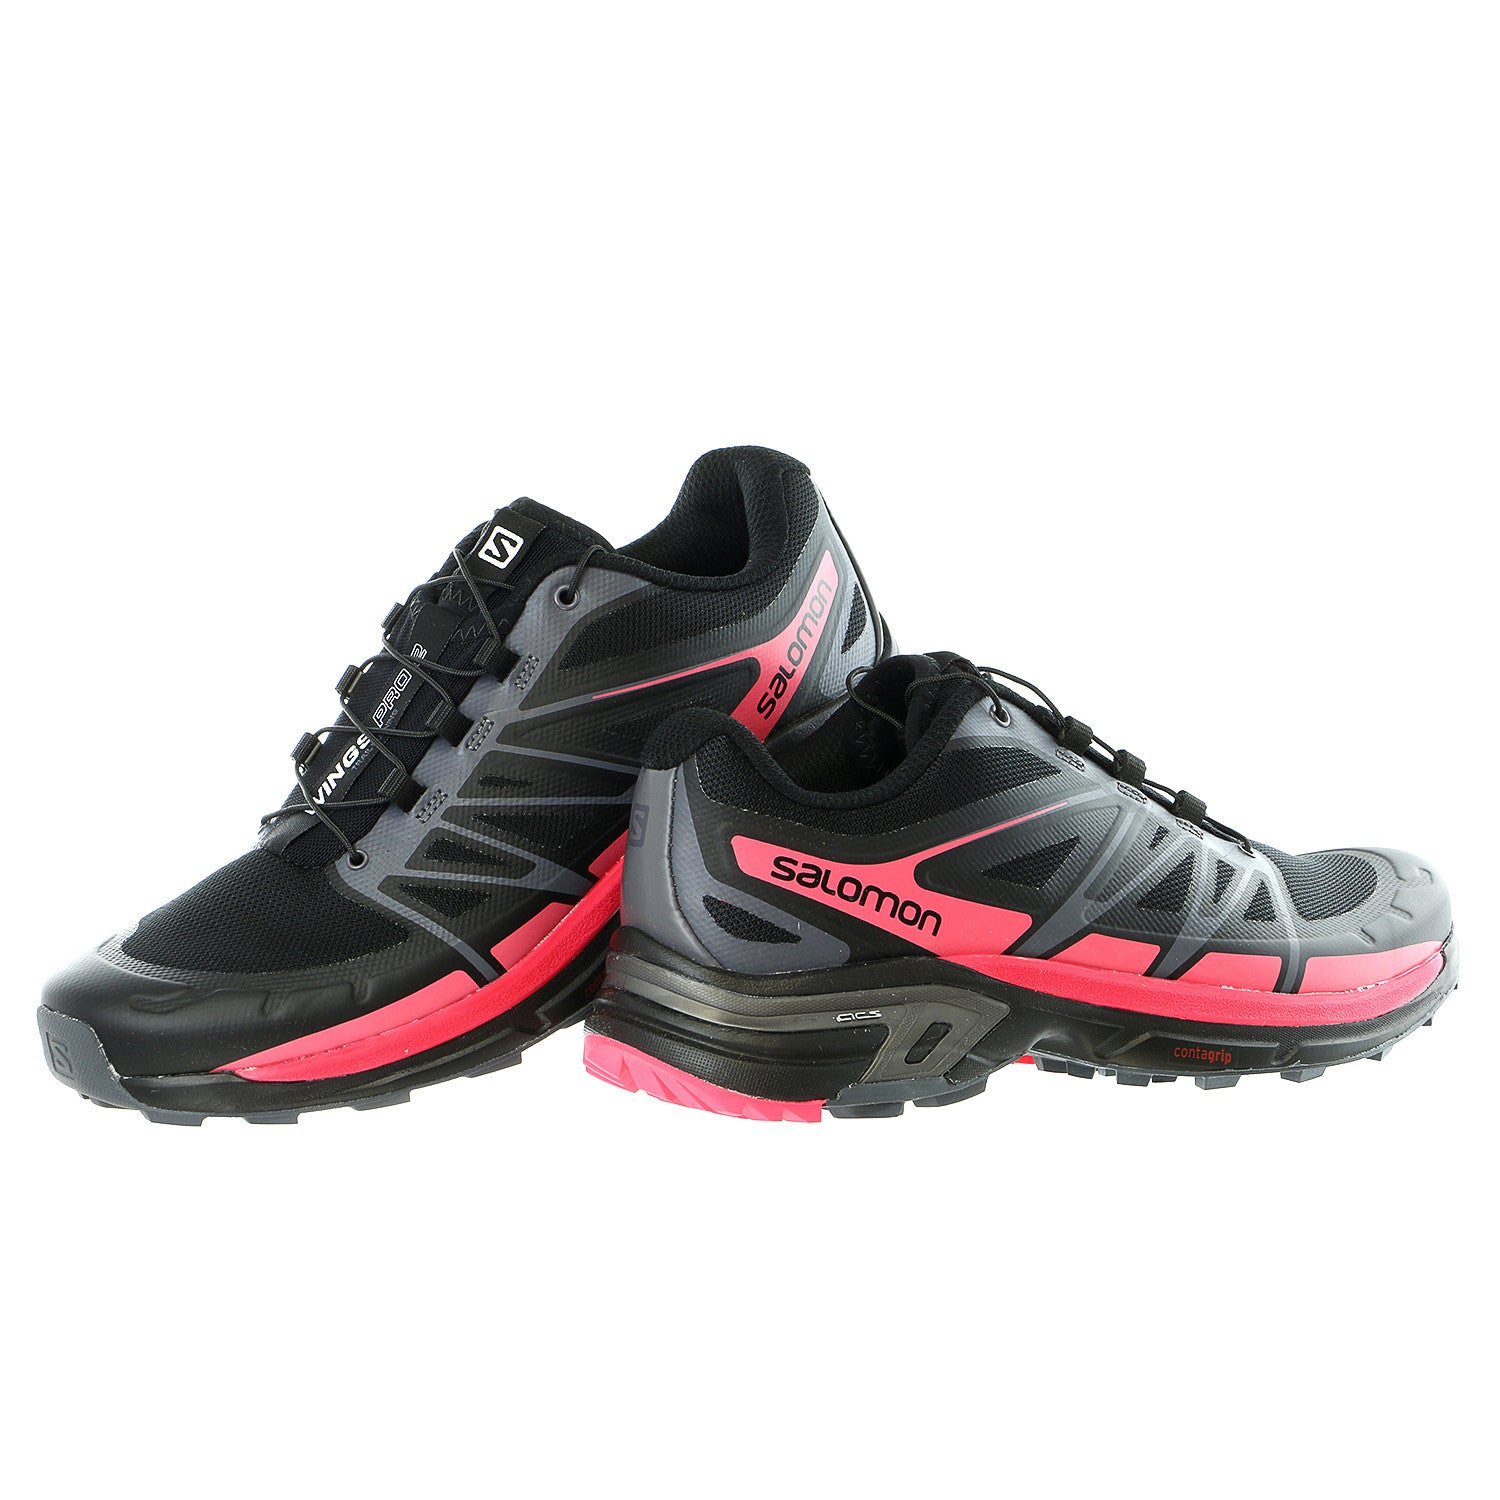 81db0472d41b Salomon Wings Pro 2 Trail Runner - Women s - Shoplifestyle